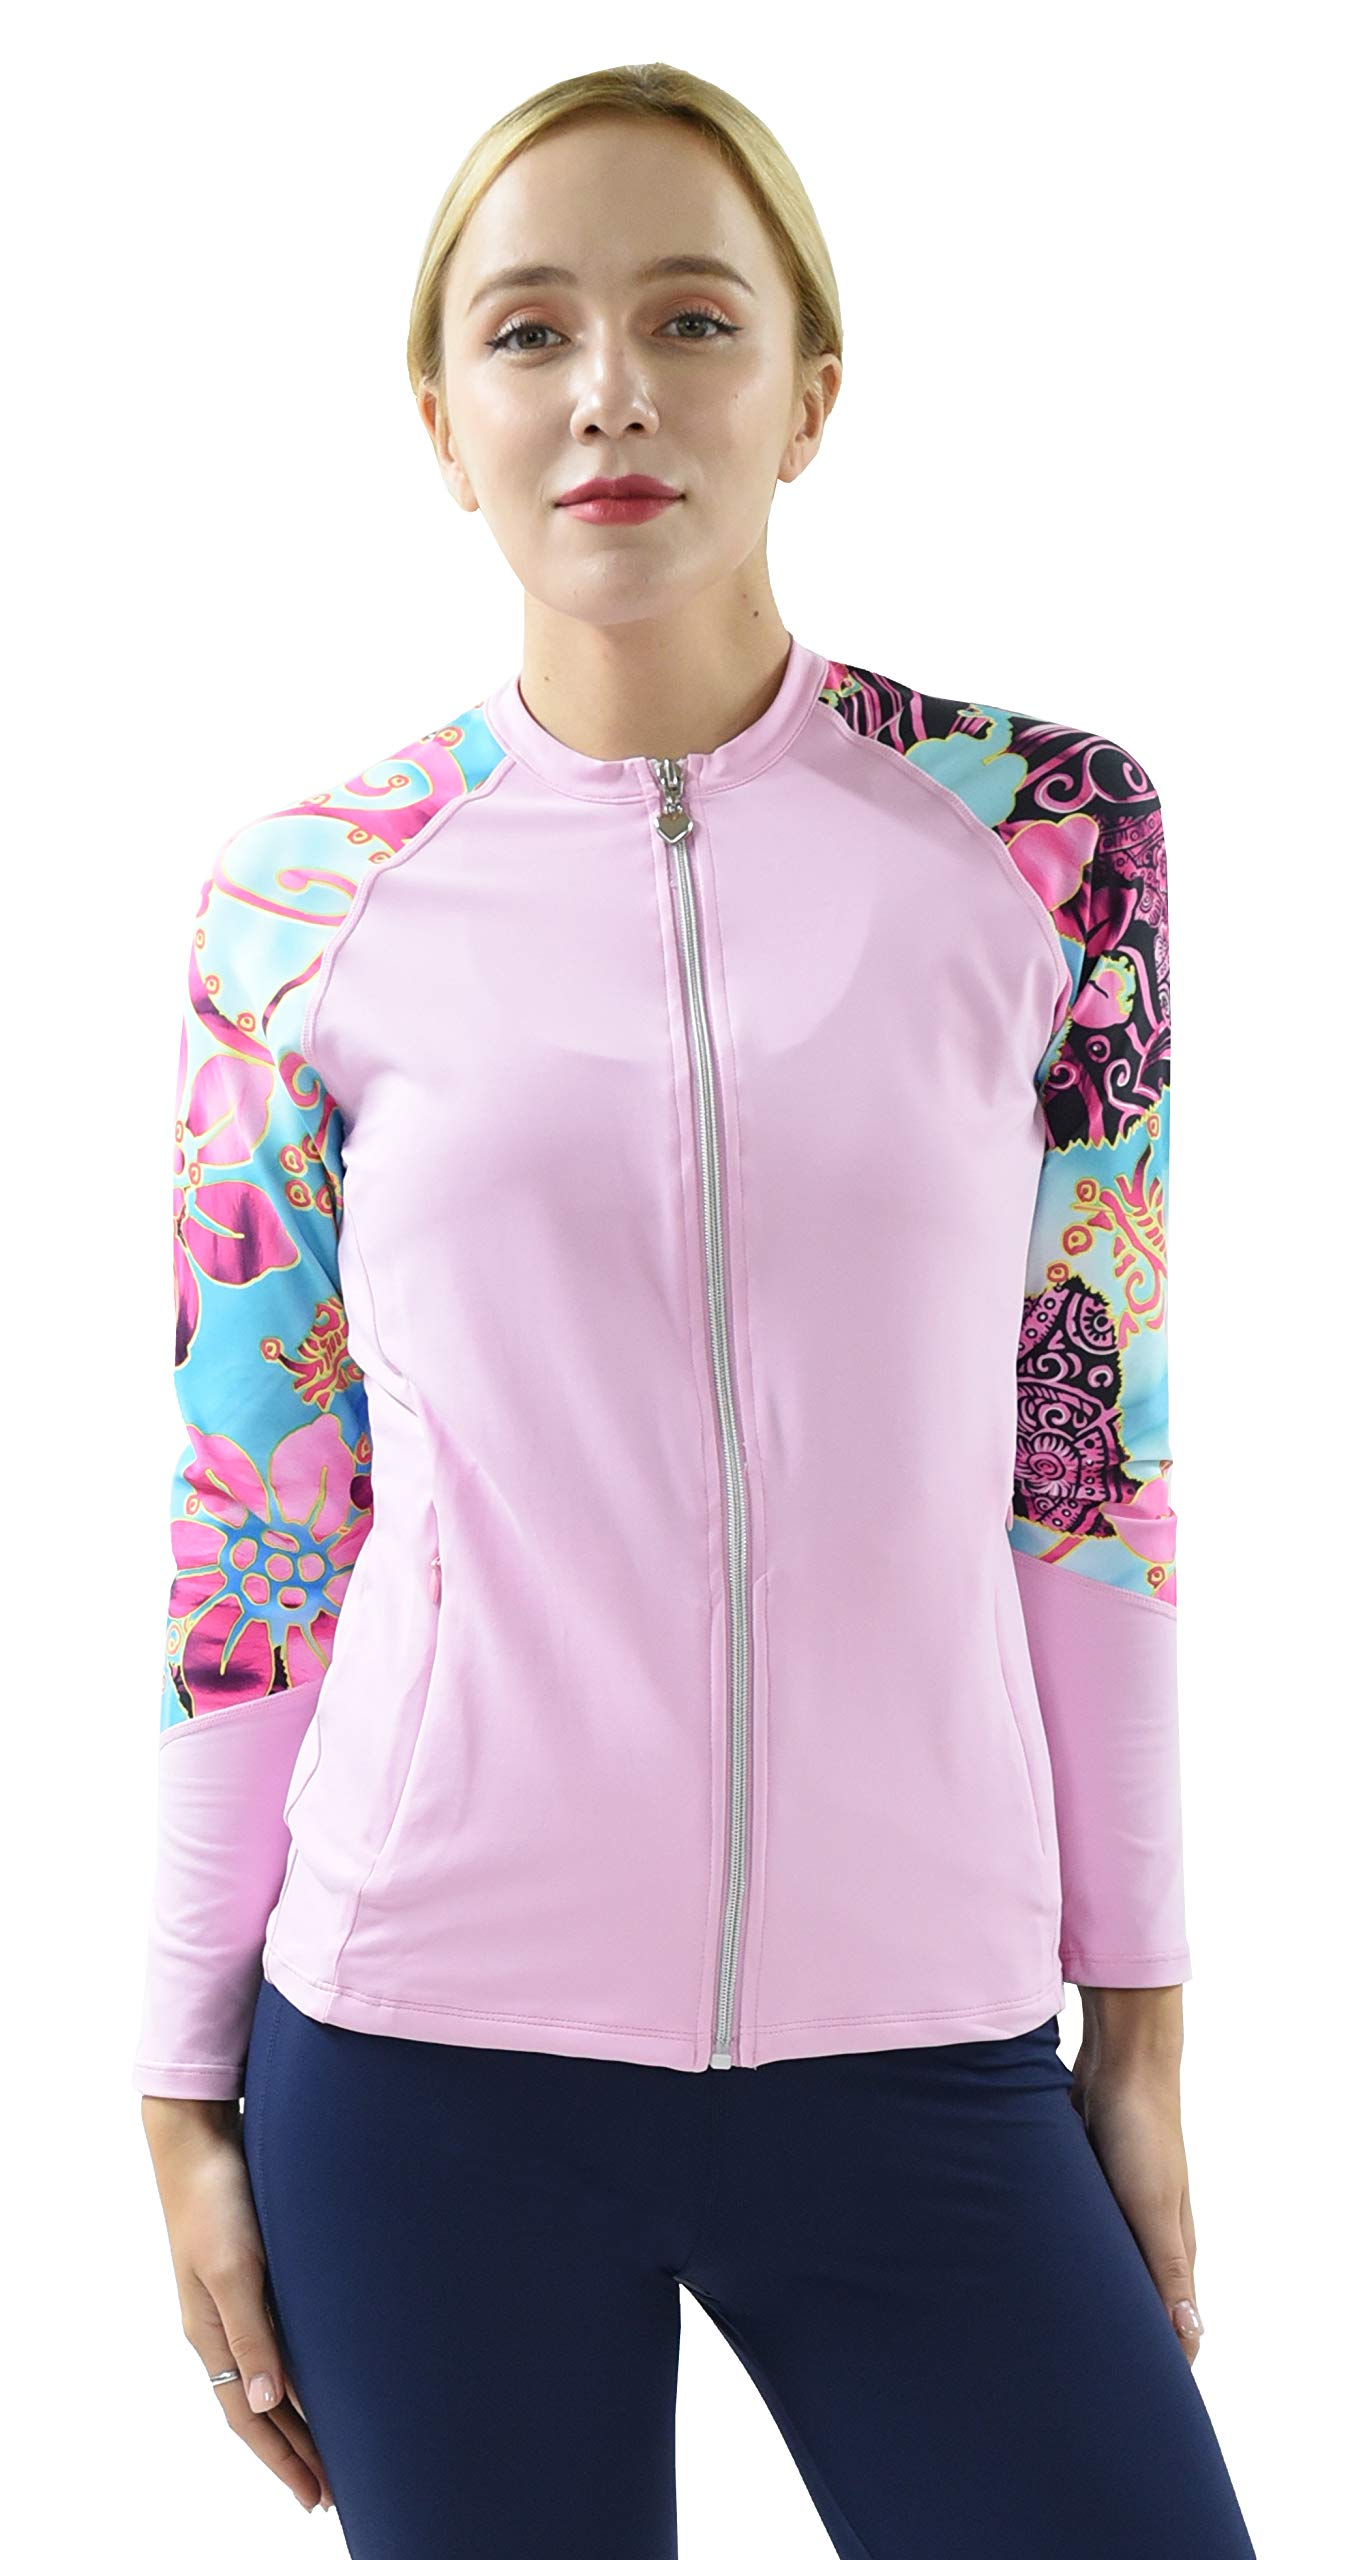 Private Island Hawaii UV Women Rash Guard Zip Up Long Sleeve Yoga Active Workout (XXL, PwSBP-JRSRGT) by Private Island